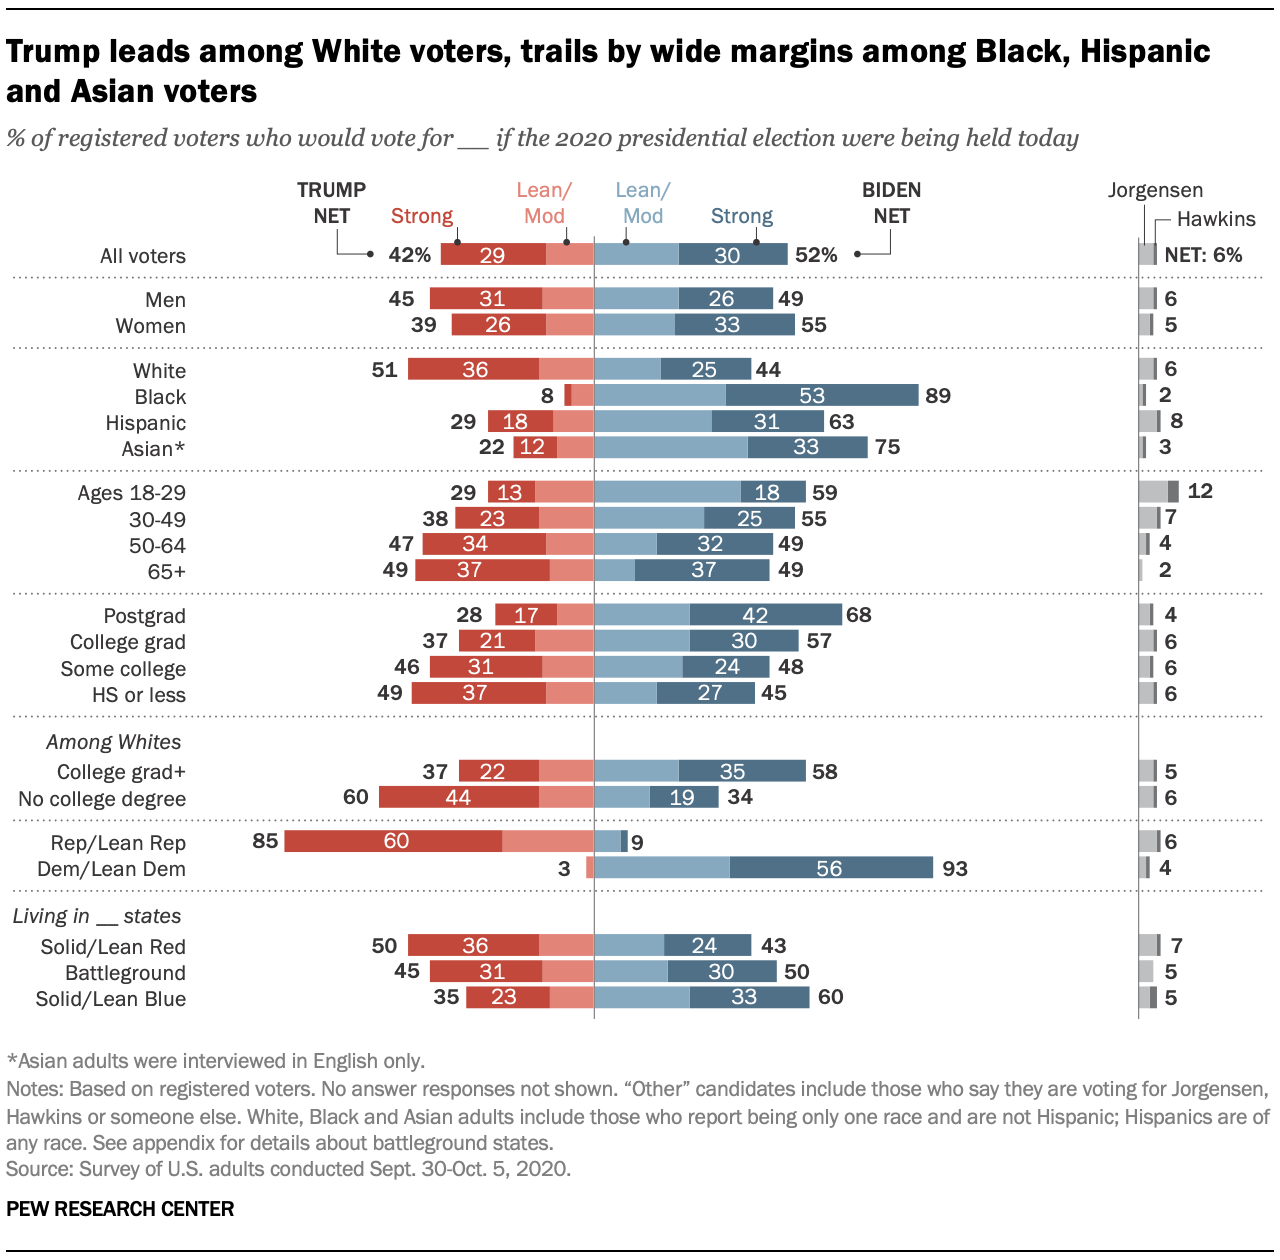 Trump leads among White voters, trails by wide margins among Black, Hispanic and Asian voters